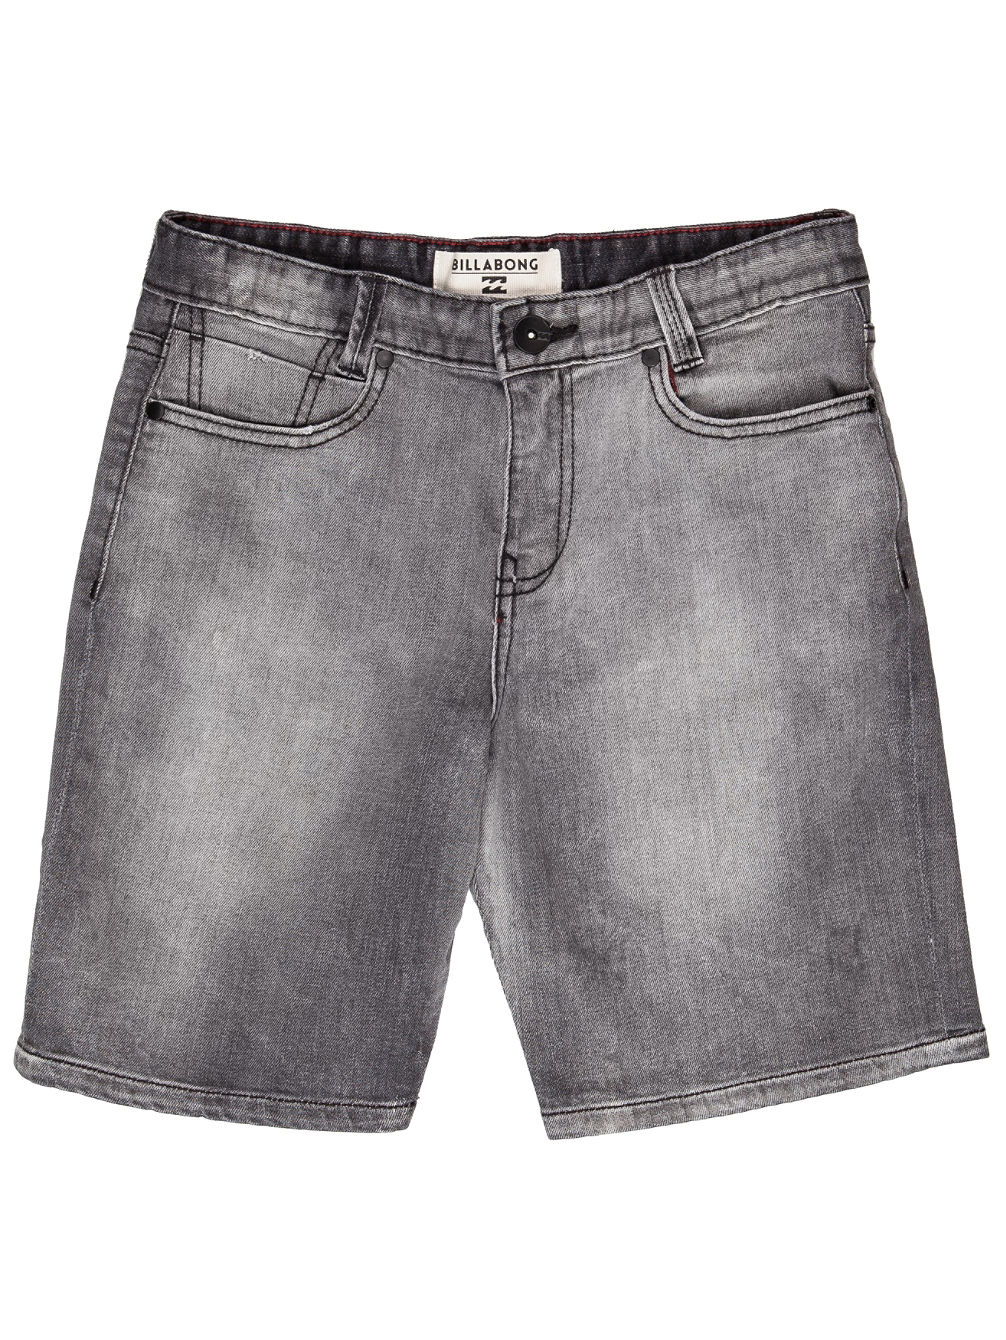 Outsider 5 Pockets Denim Shorts Boys